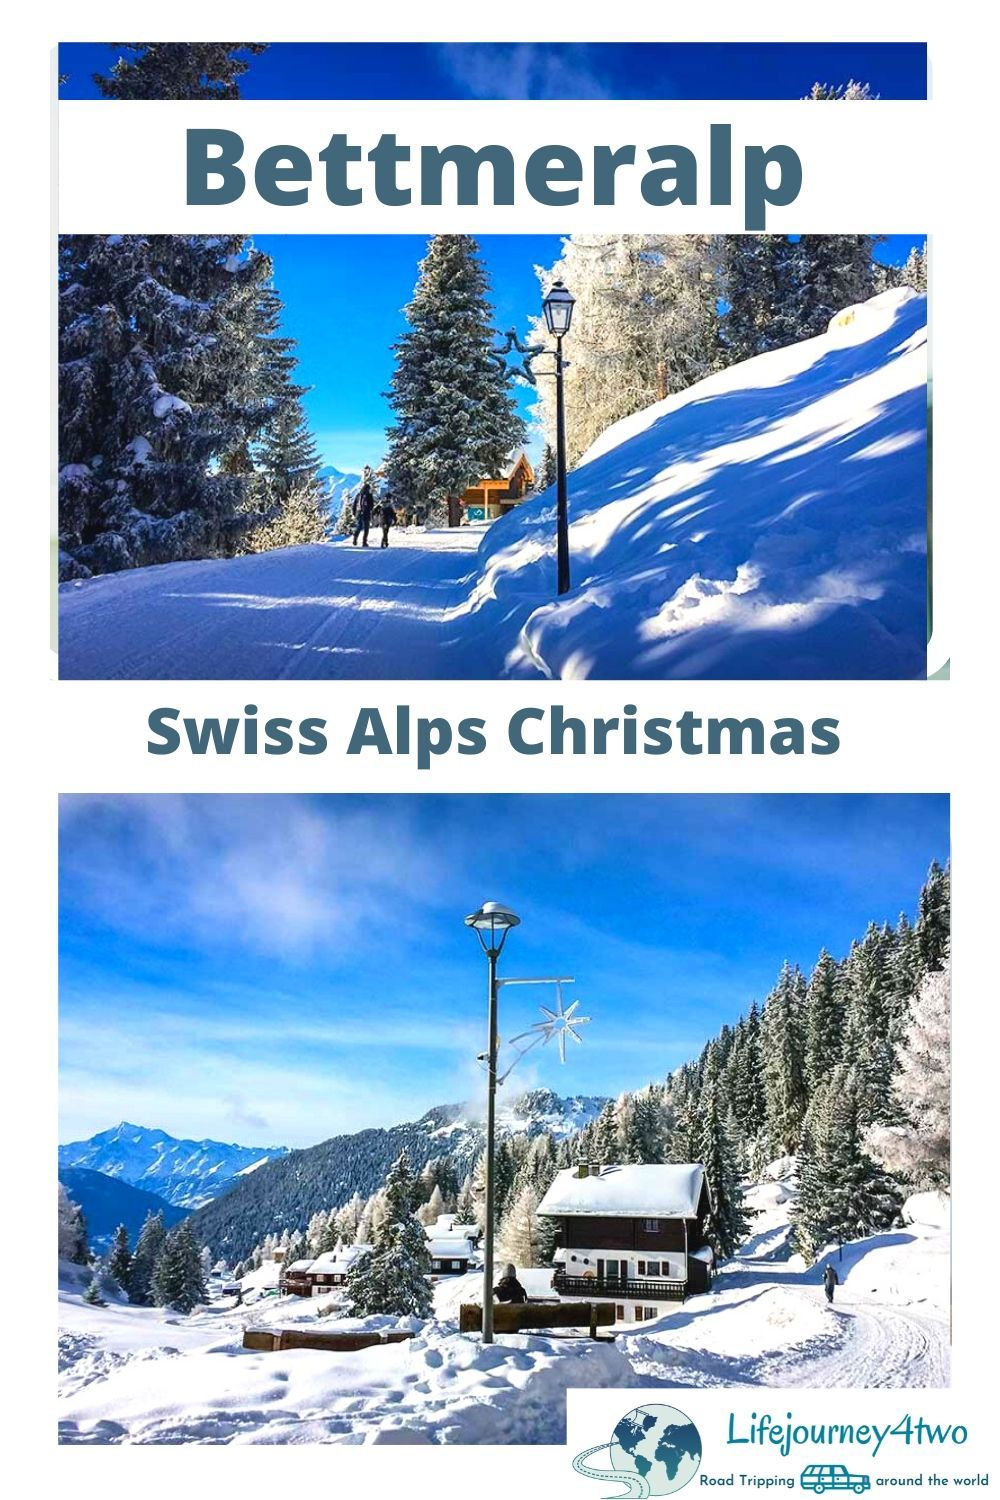 Bettmeralp Skiing Incredible Christmas In The Swiss Alps Lifejourney4two In 2020 Winter Travel Destinations Christmas Travel Destinations Adventure Travel